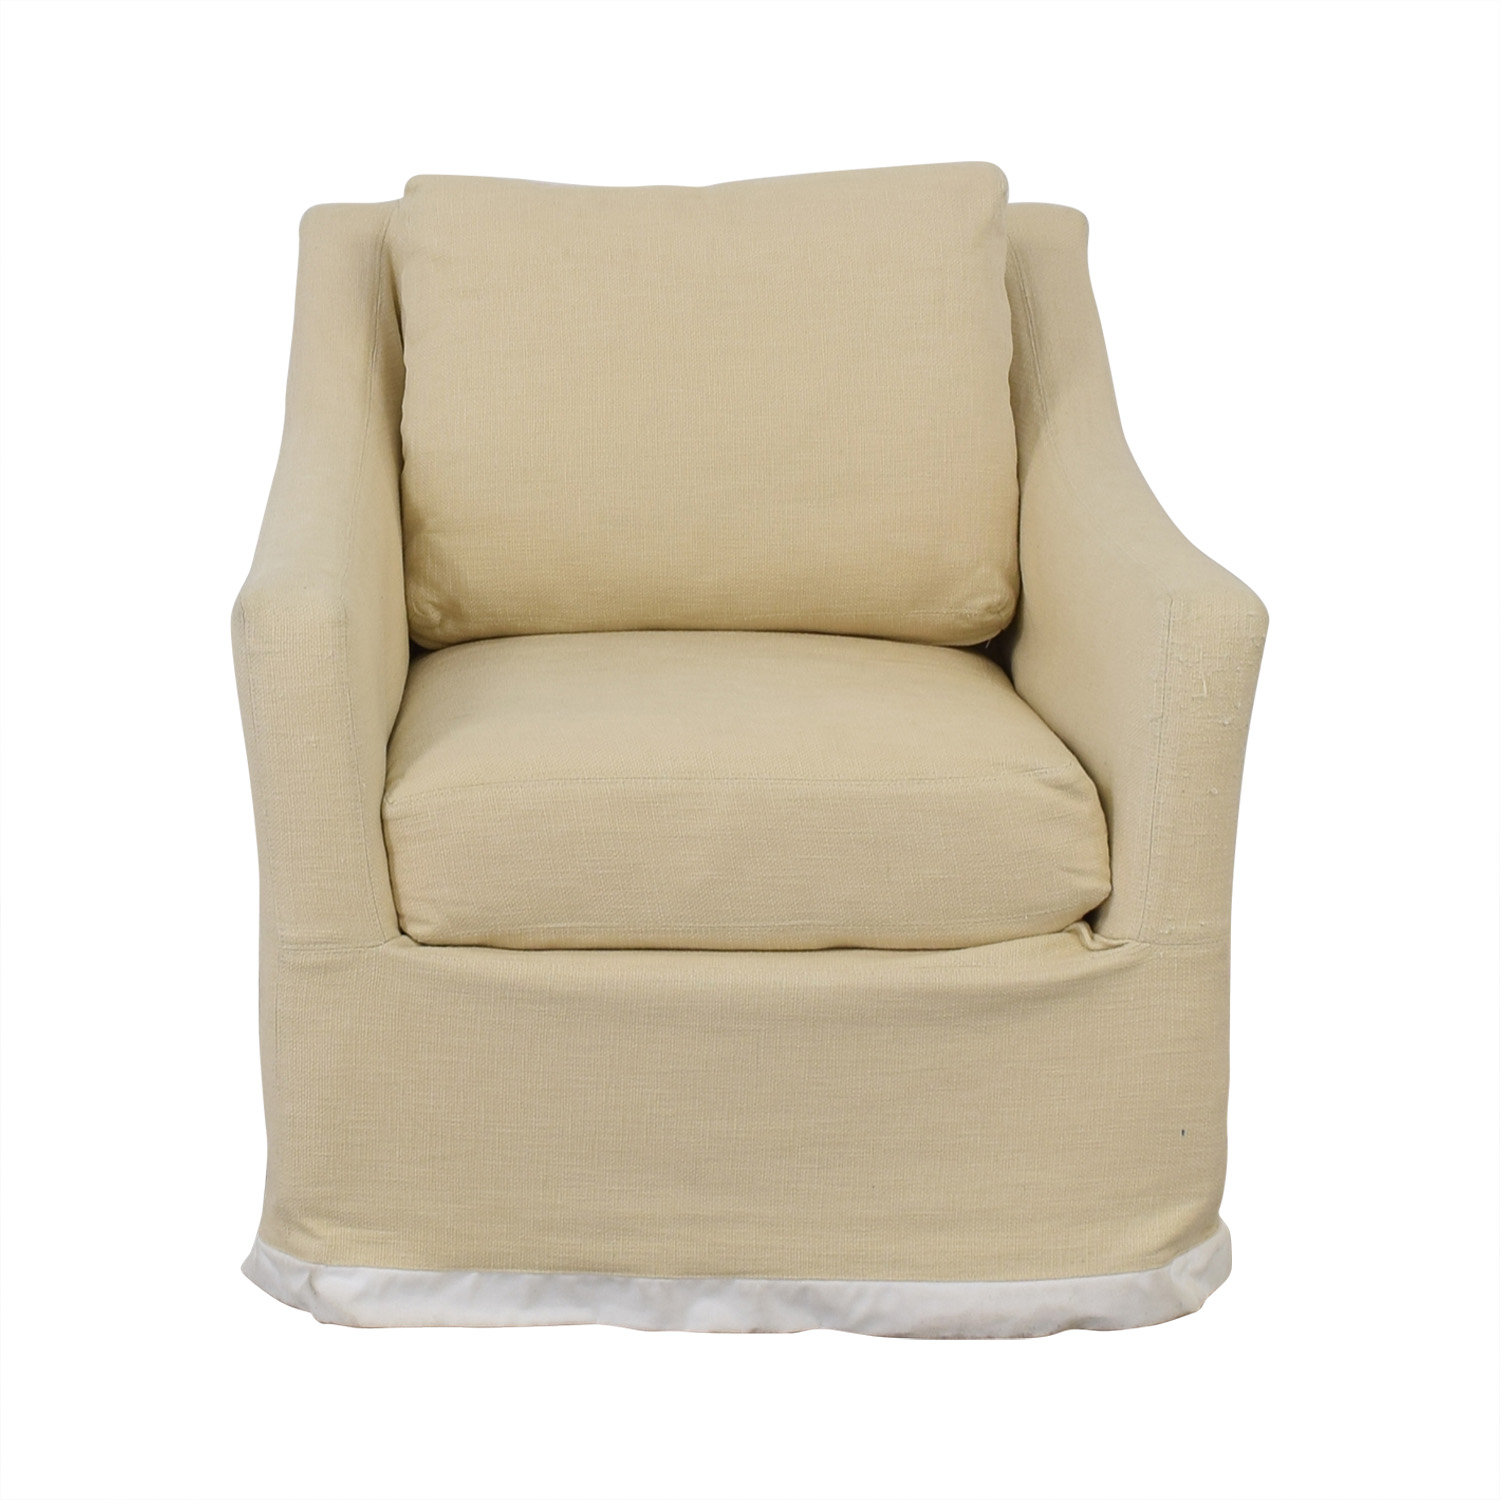 shop Serena & Lily Presidio Glider Serena & Lily Accent Chairs